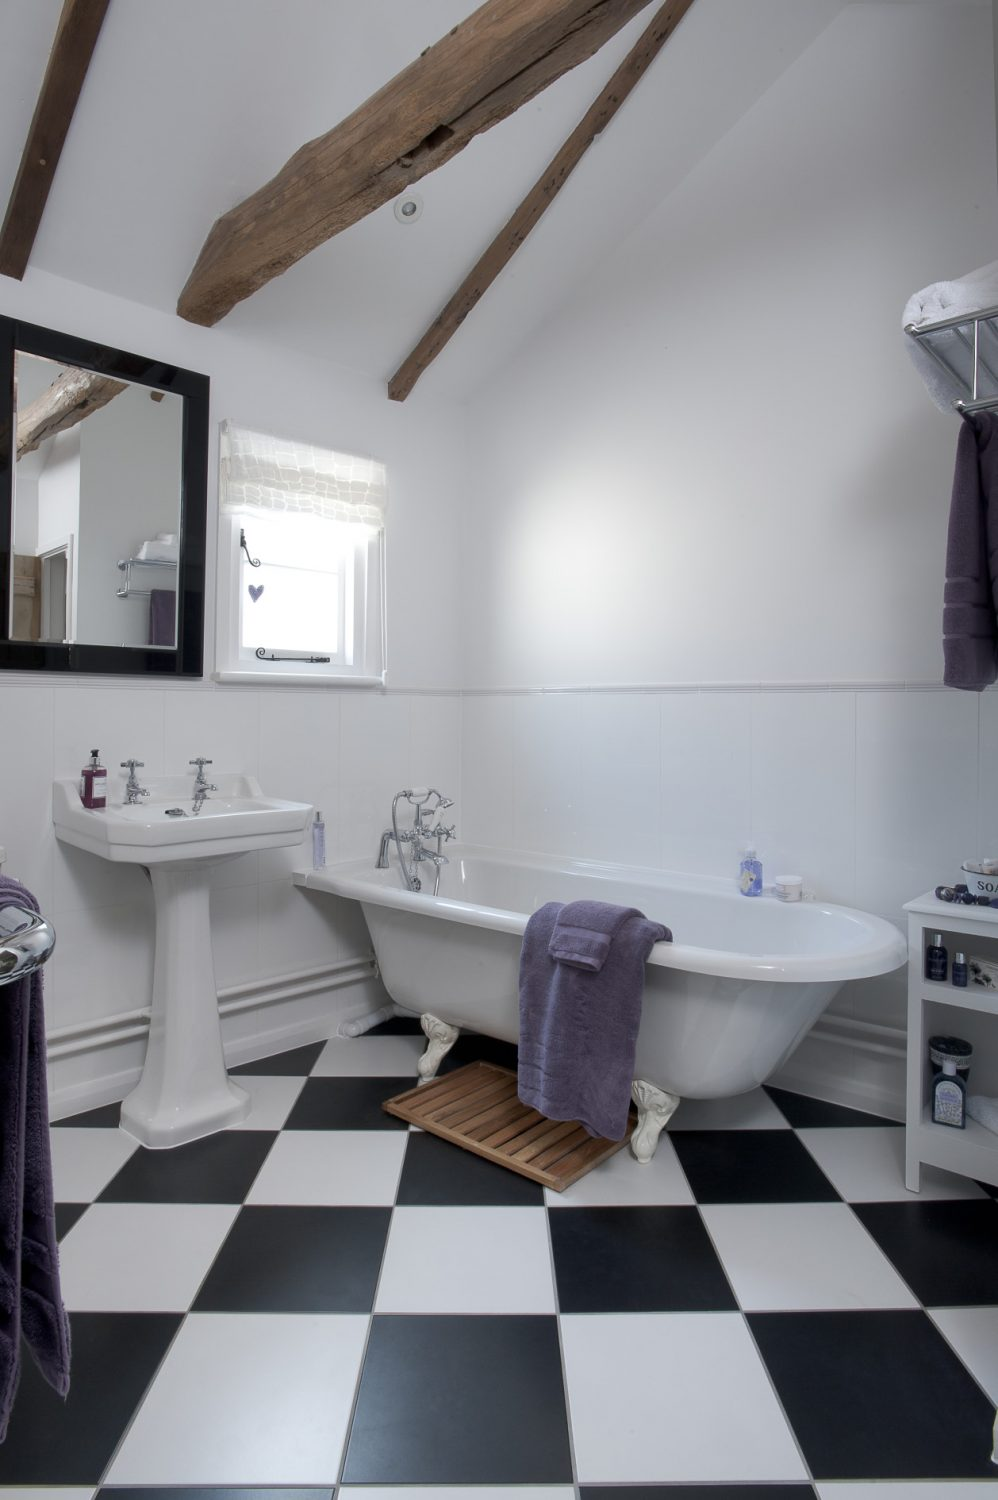 The bathroom next door features black and white diamond floor tiles, a roll top bath and a Savoy style pedestal basin underneath a piano black framed and bevelled mirror